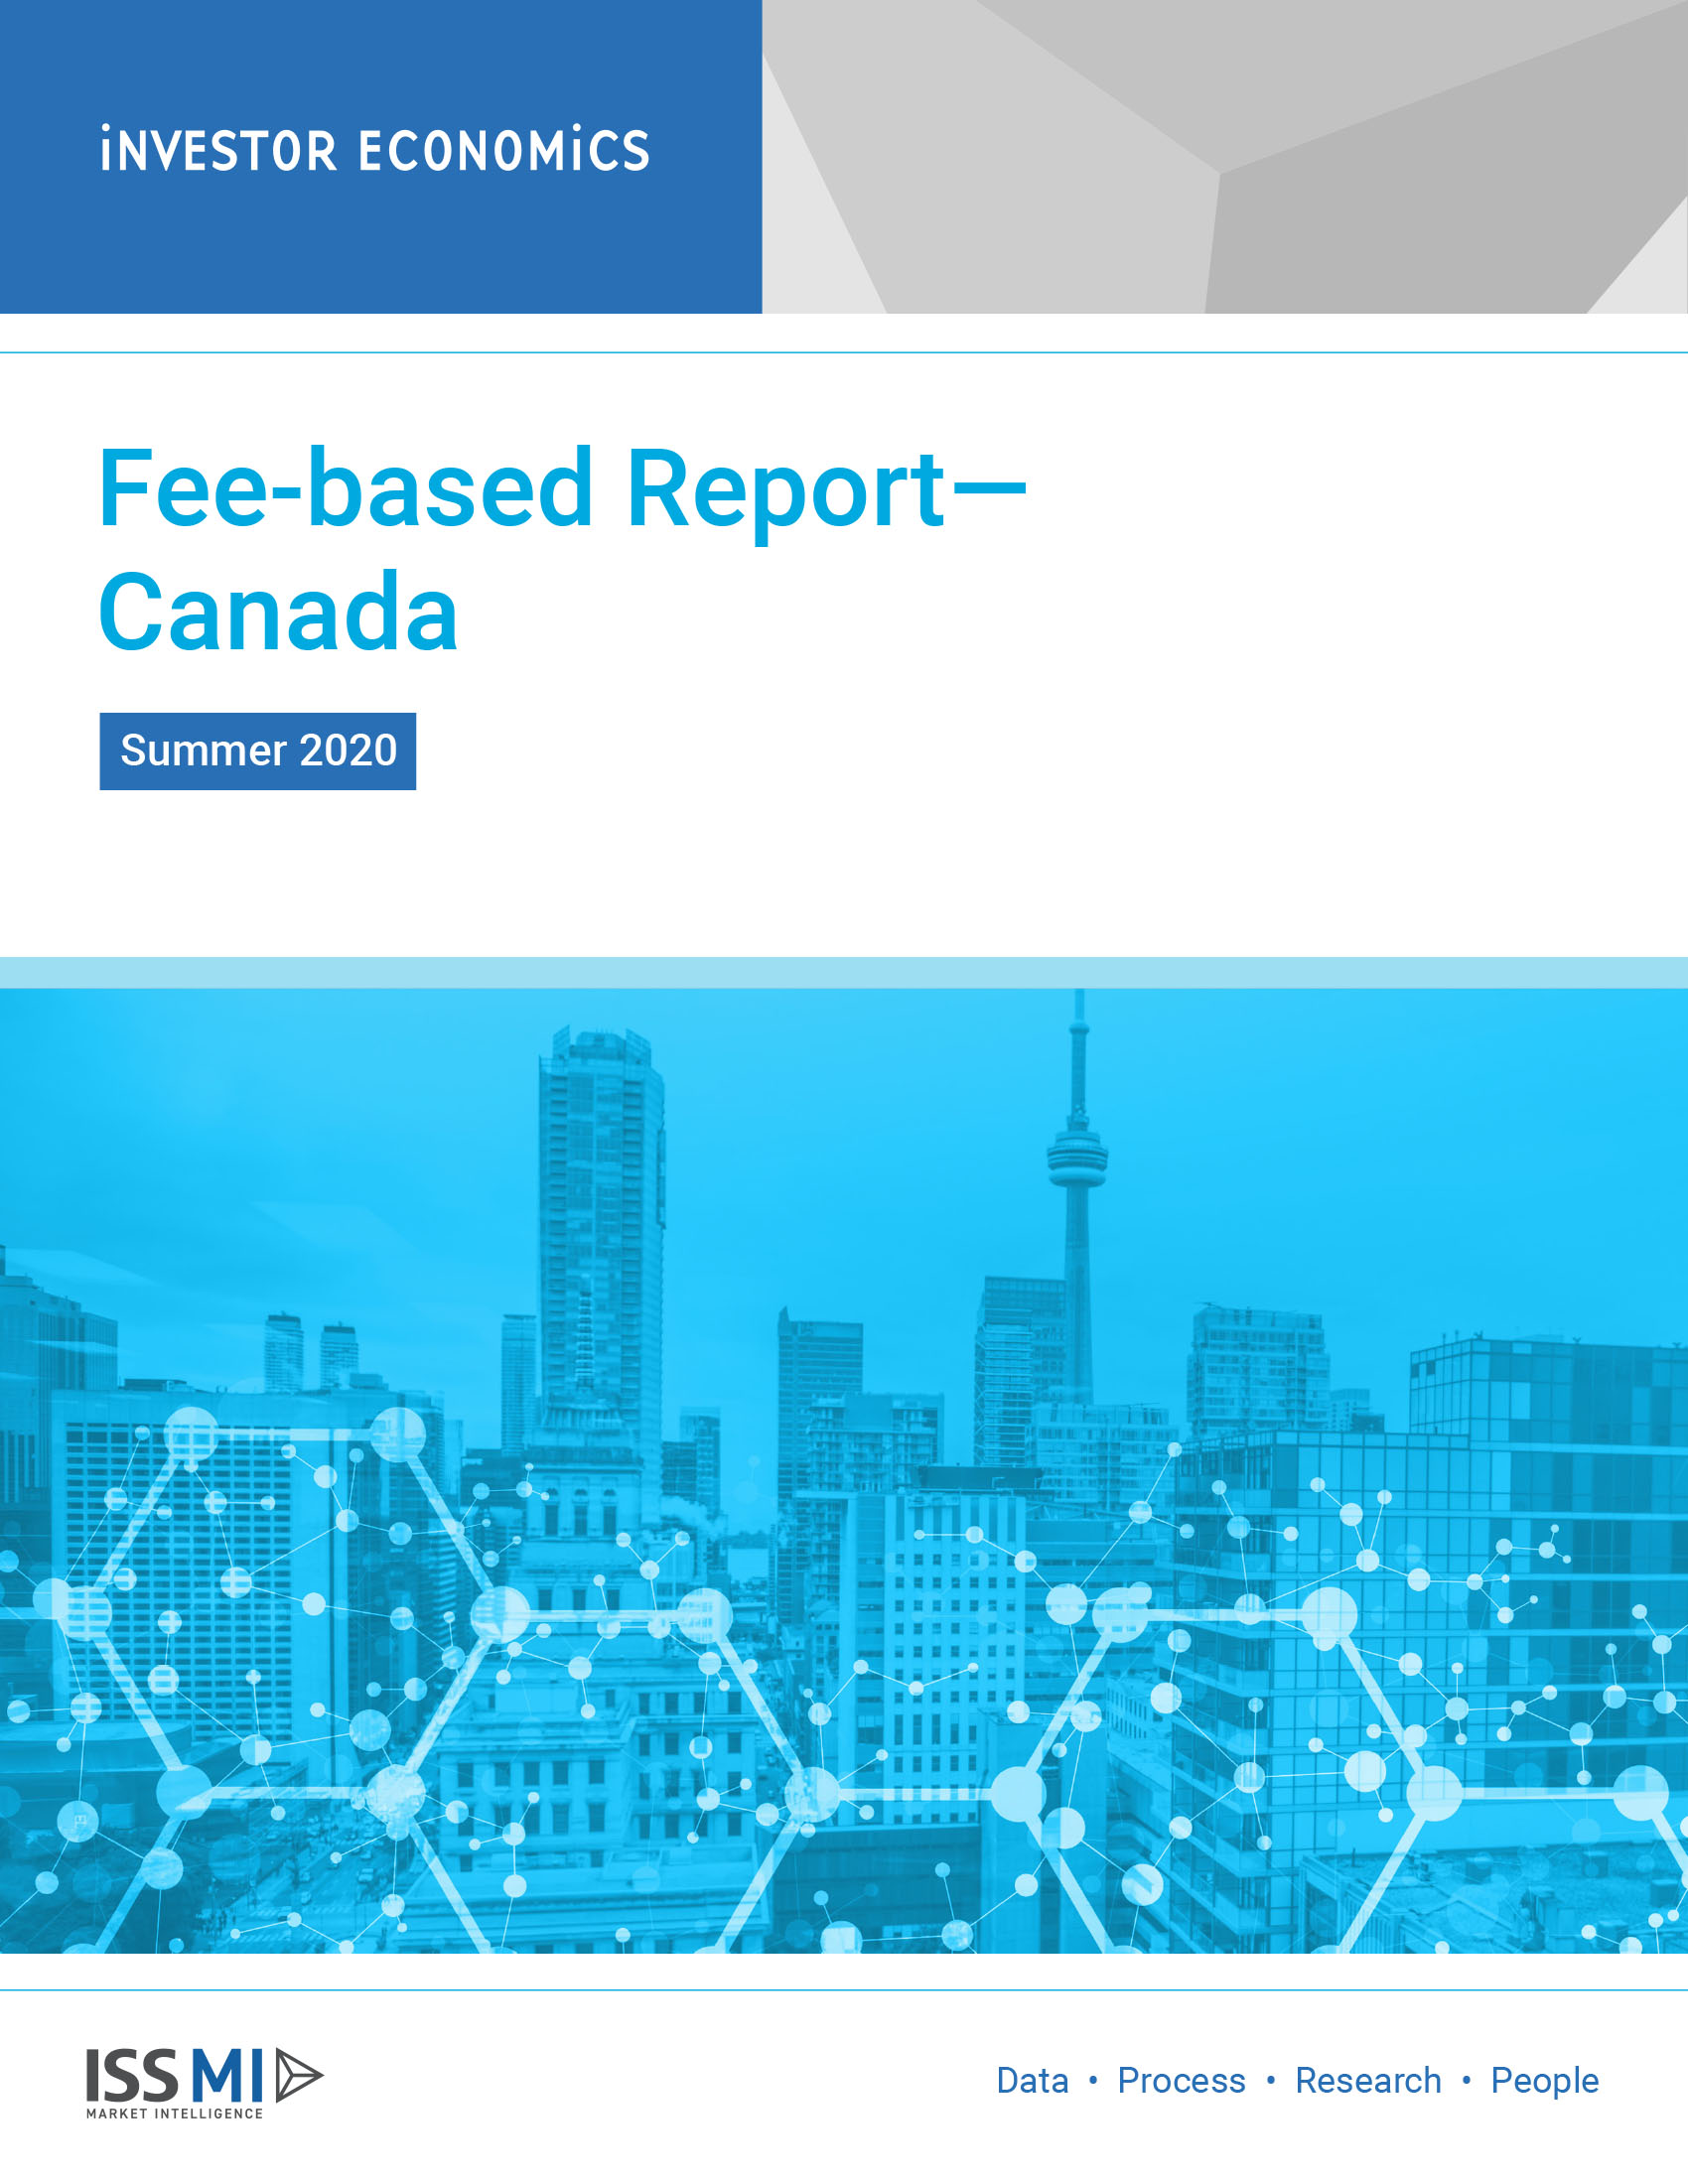 The Fee-based Summer 2020 Semi-annual Report